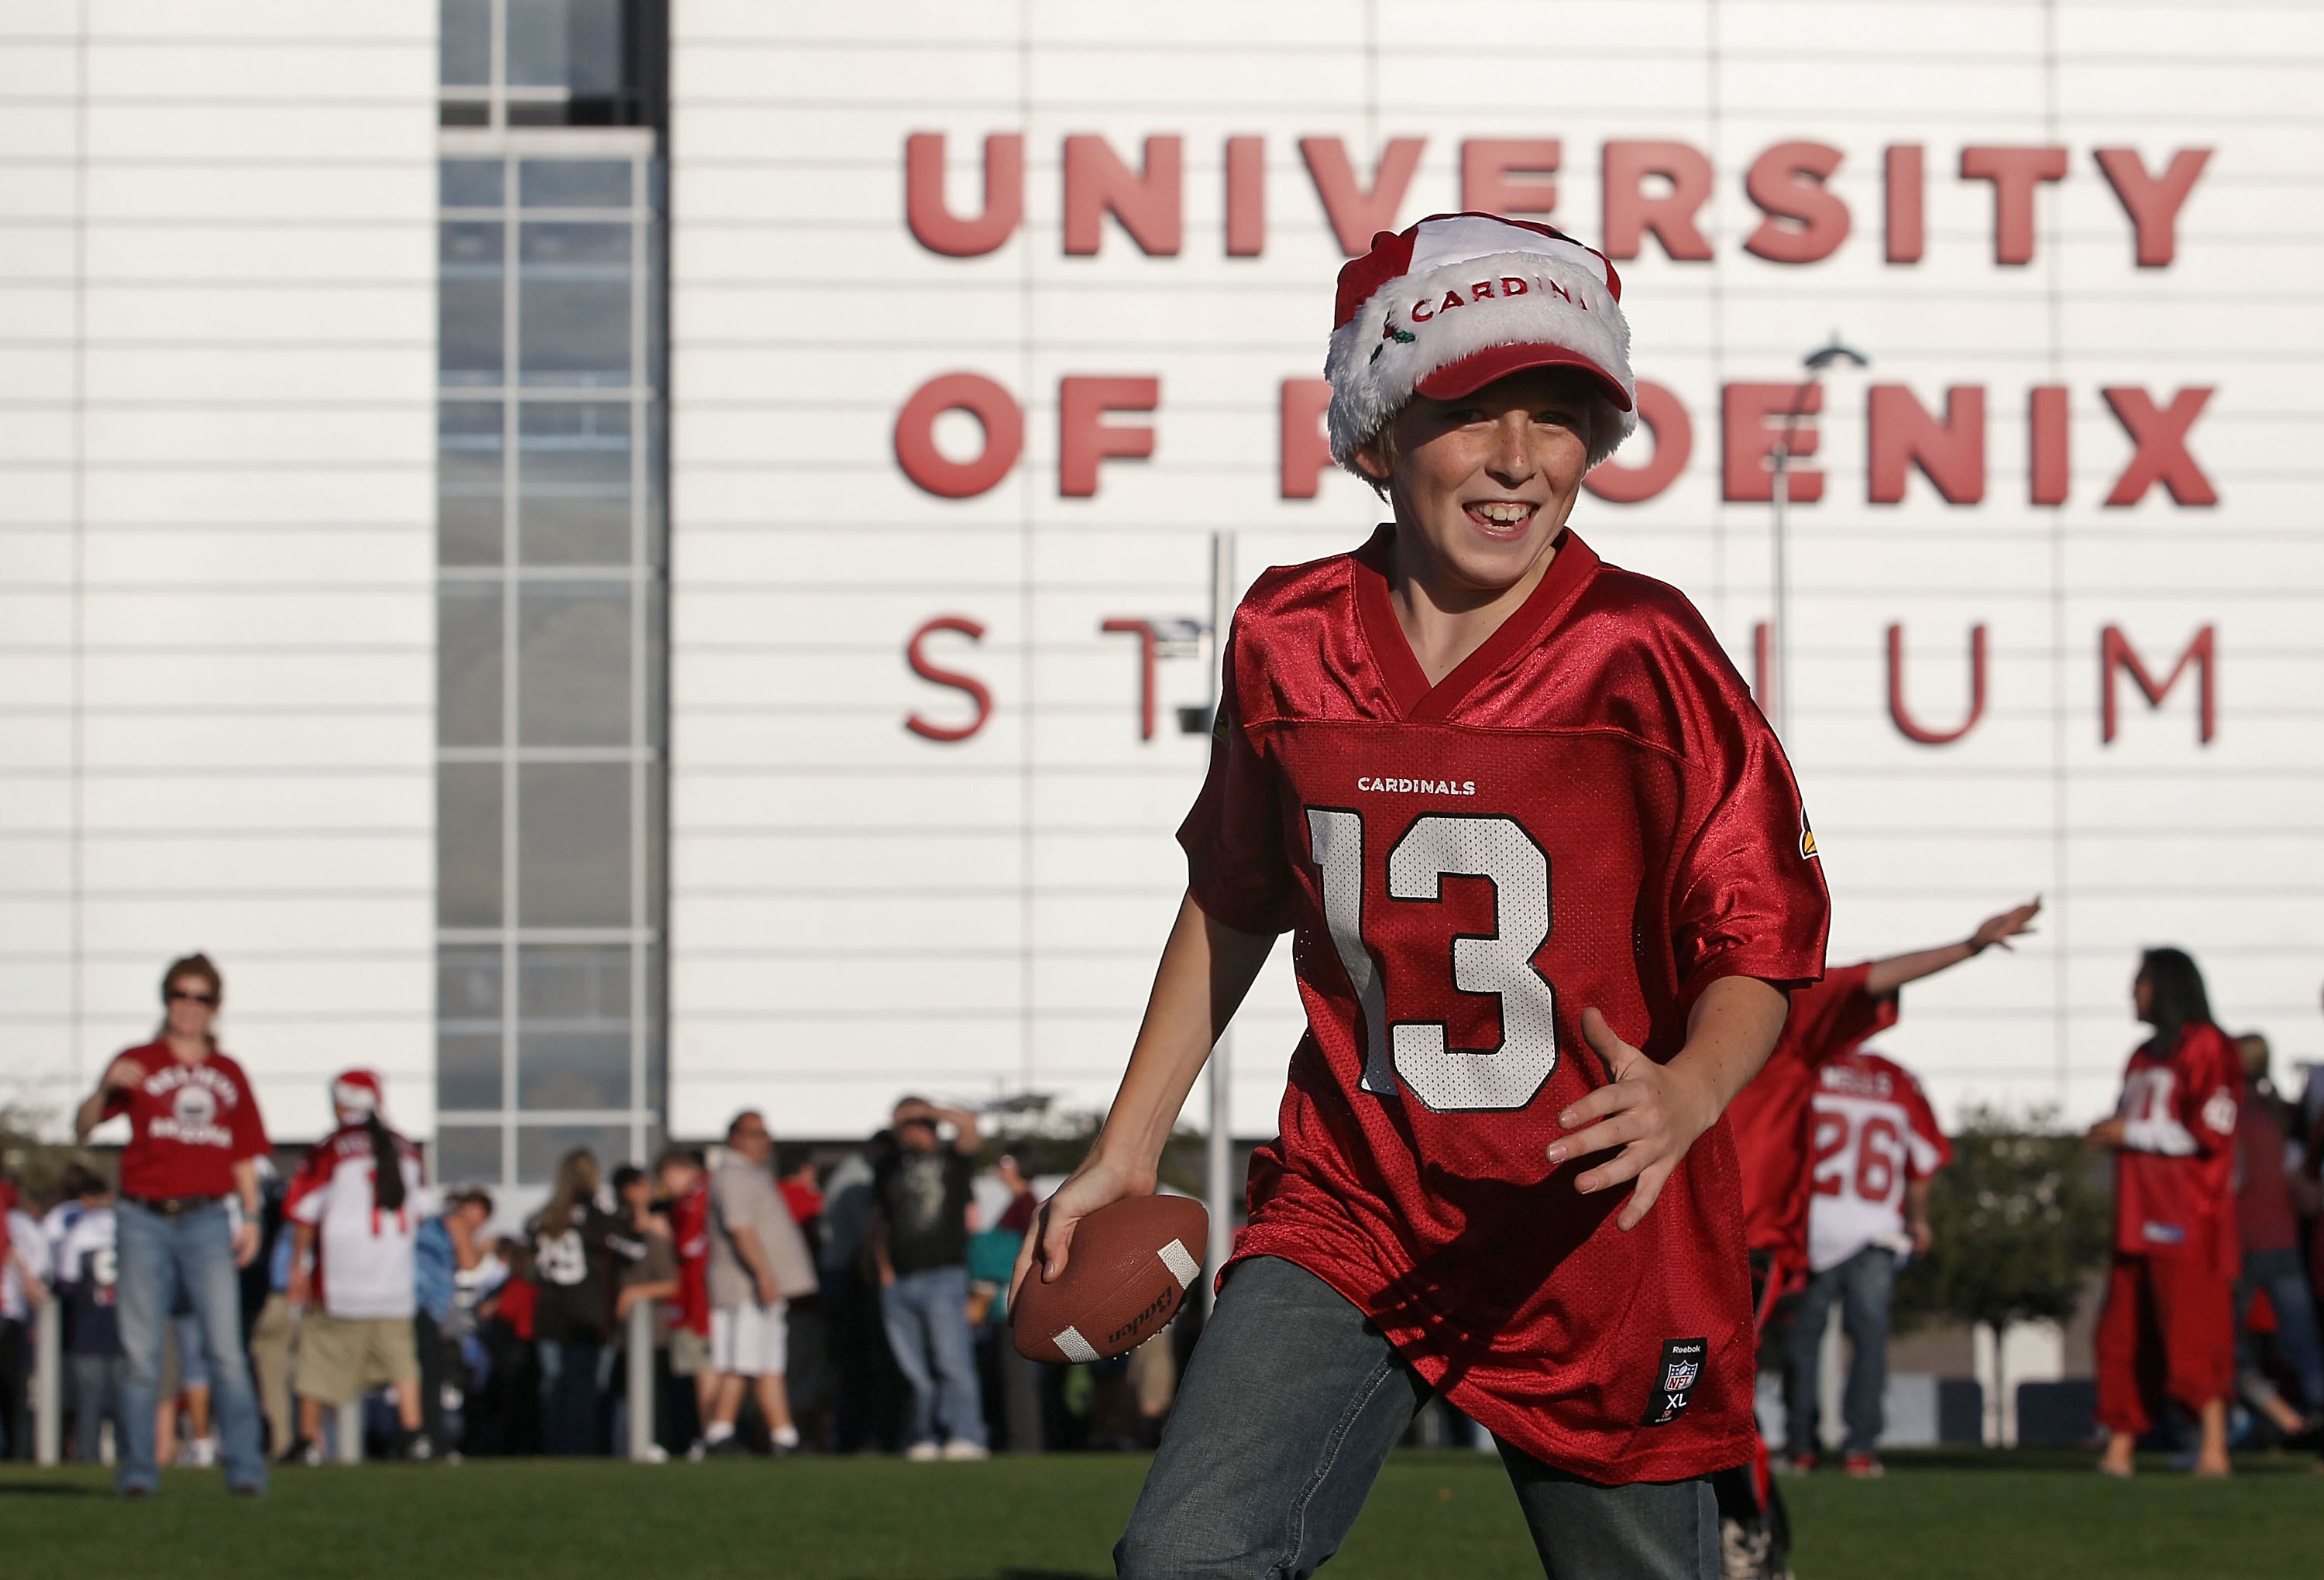 GLENDALE, AZ - DECEMBER 25:  A young fan of the Arizona Cardinals plays football on the grass before the NFL game against the Dallas Cowboys at the University of Phoenix Stadium on December 25, 2010 in Glendale, Arizona.  (Photo by Christian Petersen/Gett